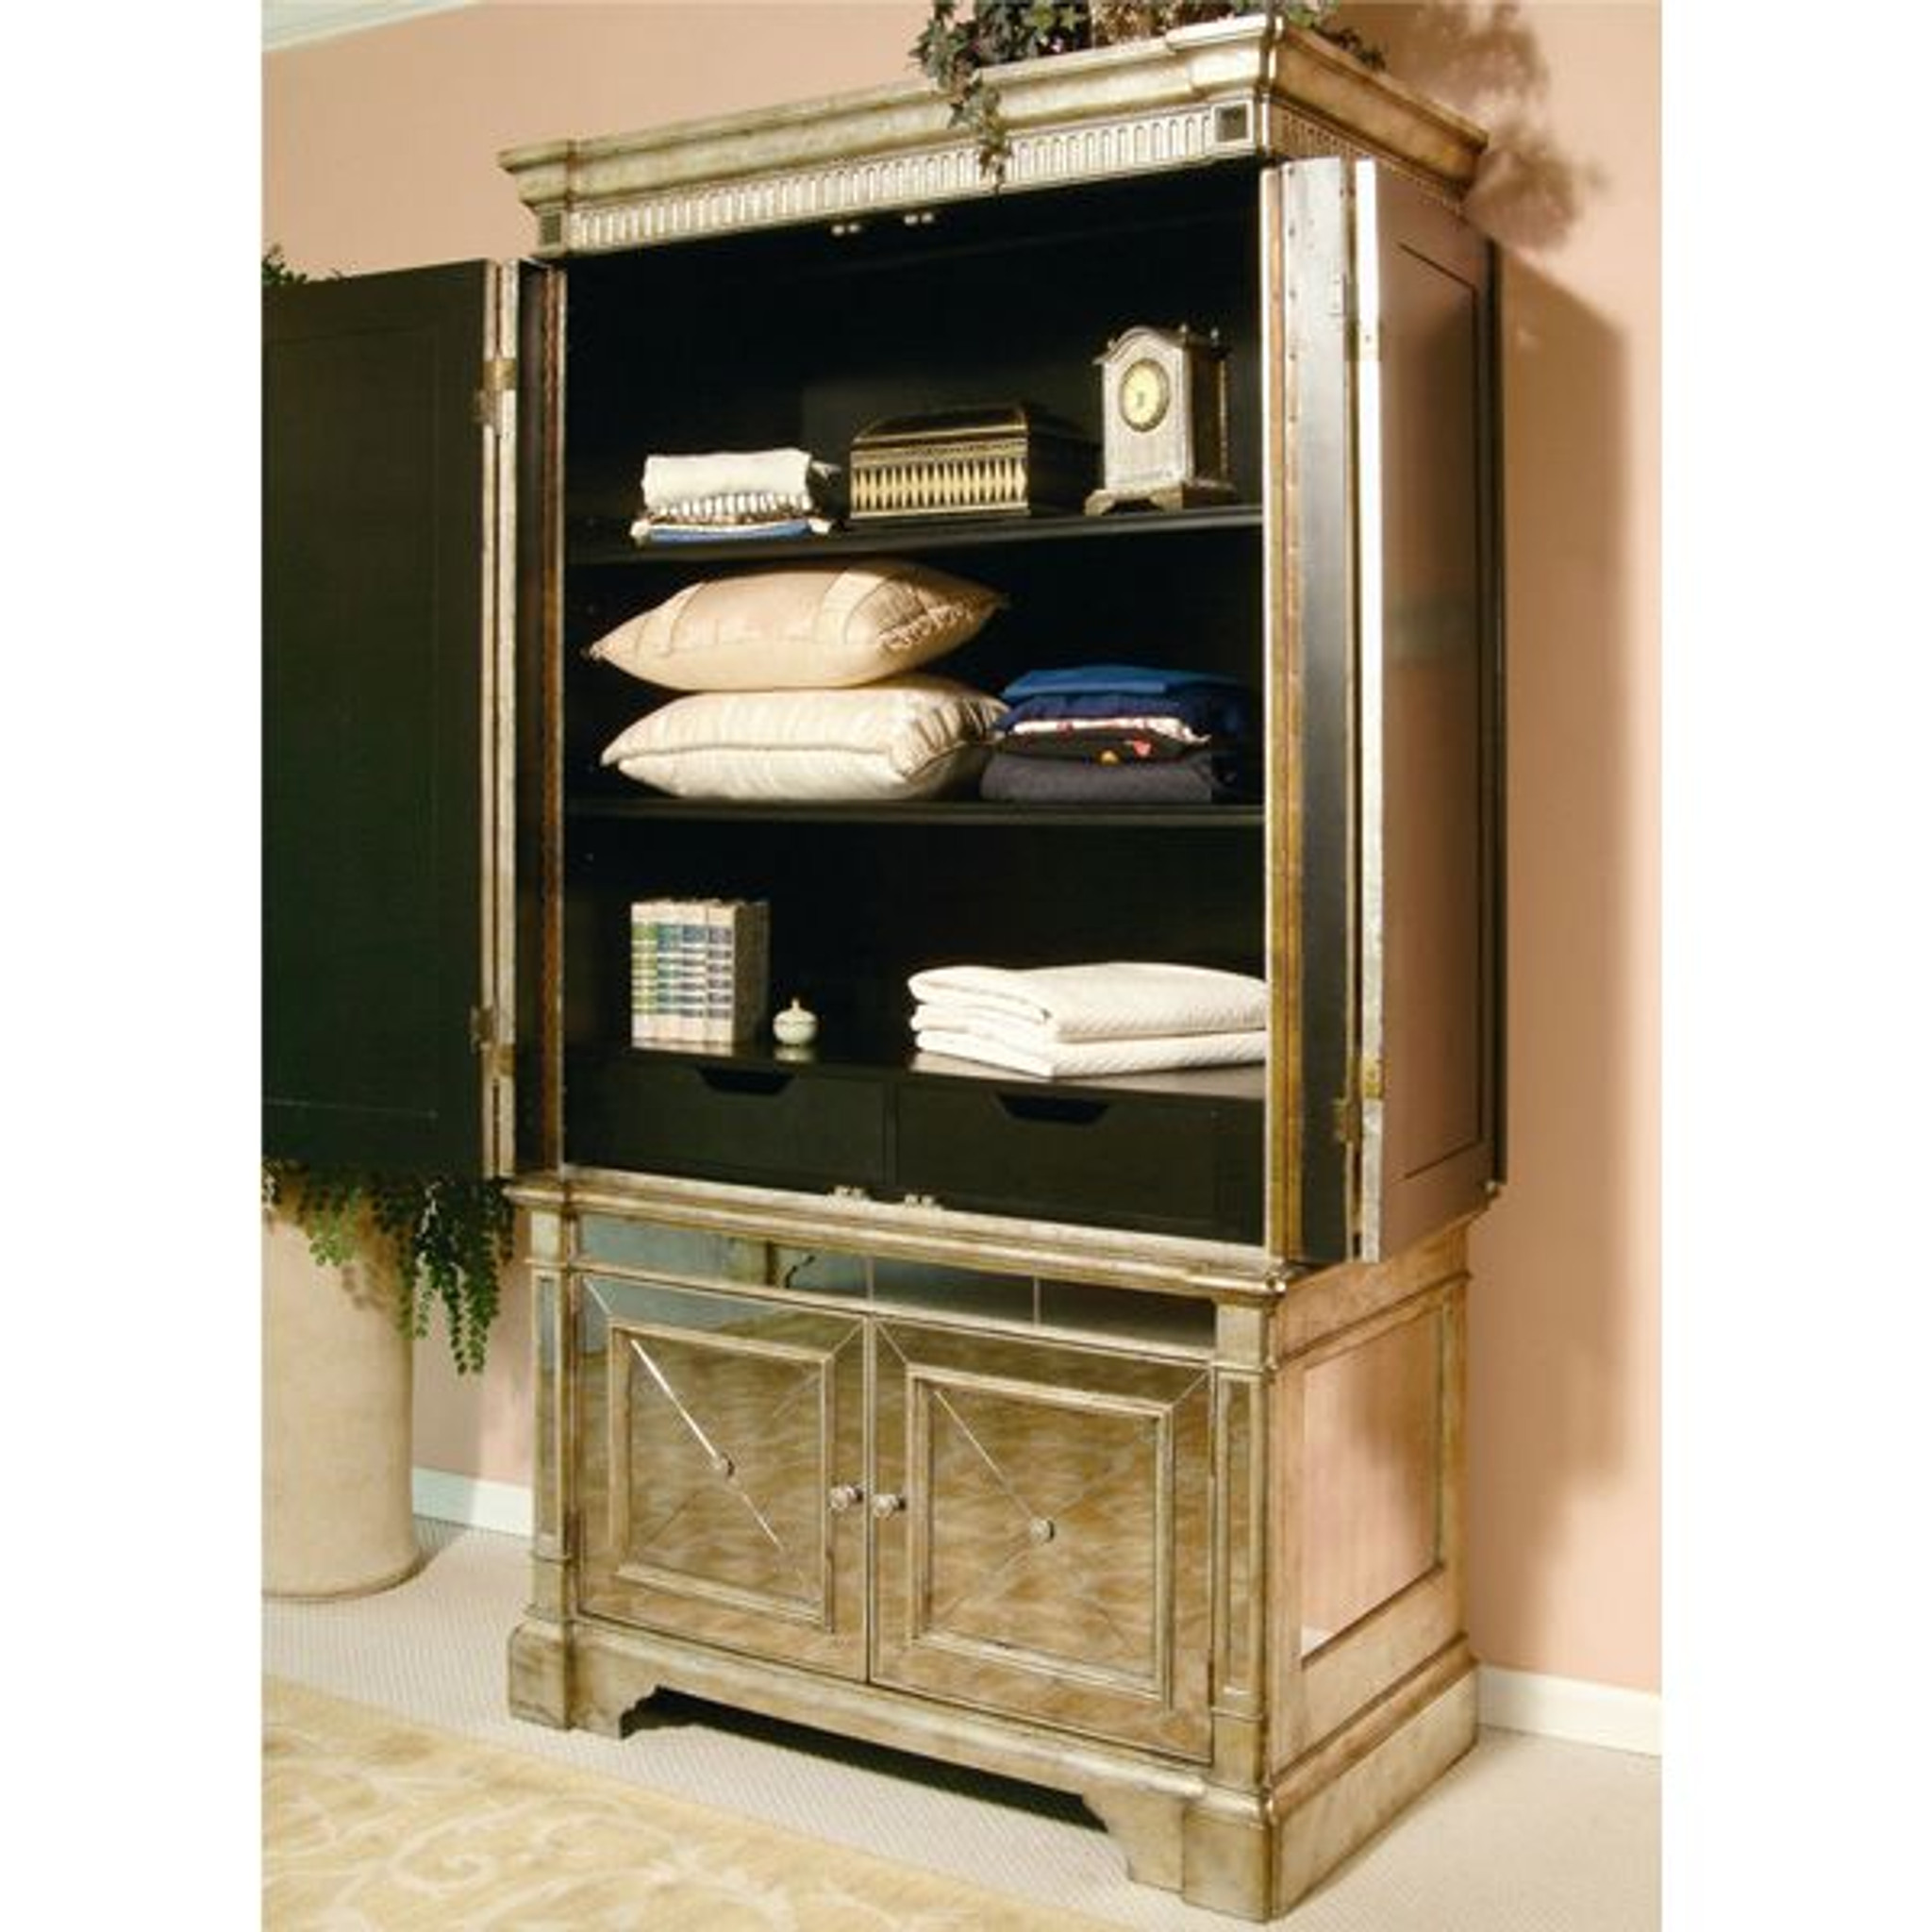 star kitchen cabinets antique mirrored armoire tv cabinet mirrored antique 2489